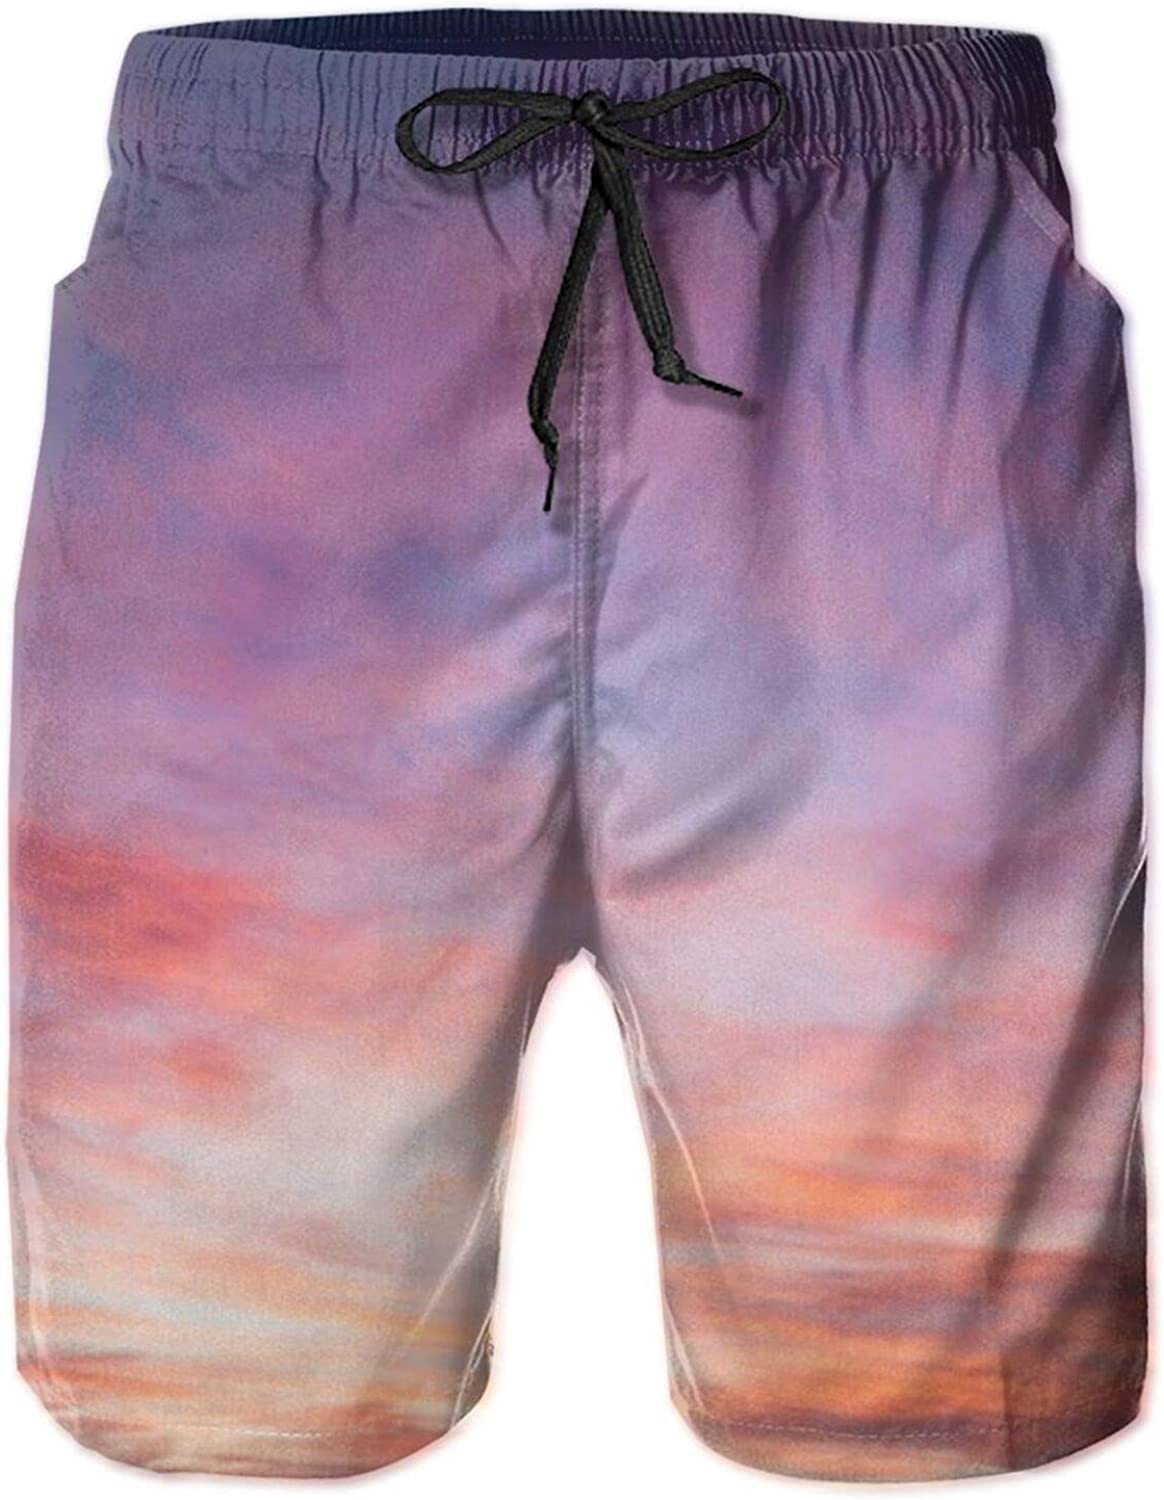 Super popular Max 40% OFF specialty store Men's 100% Polyester Sea Sunset Casual Trunks Shorts Swim Beach